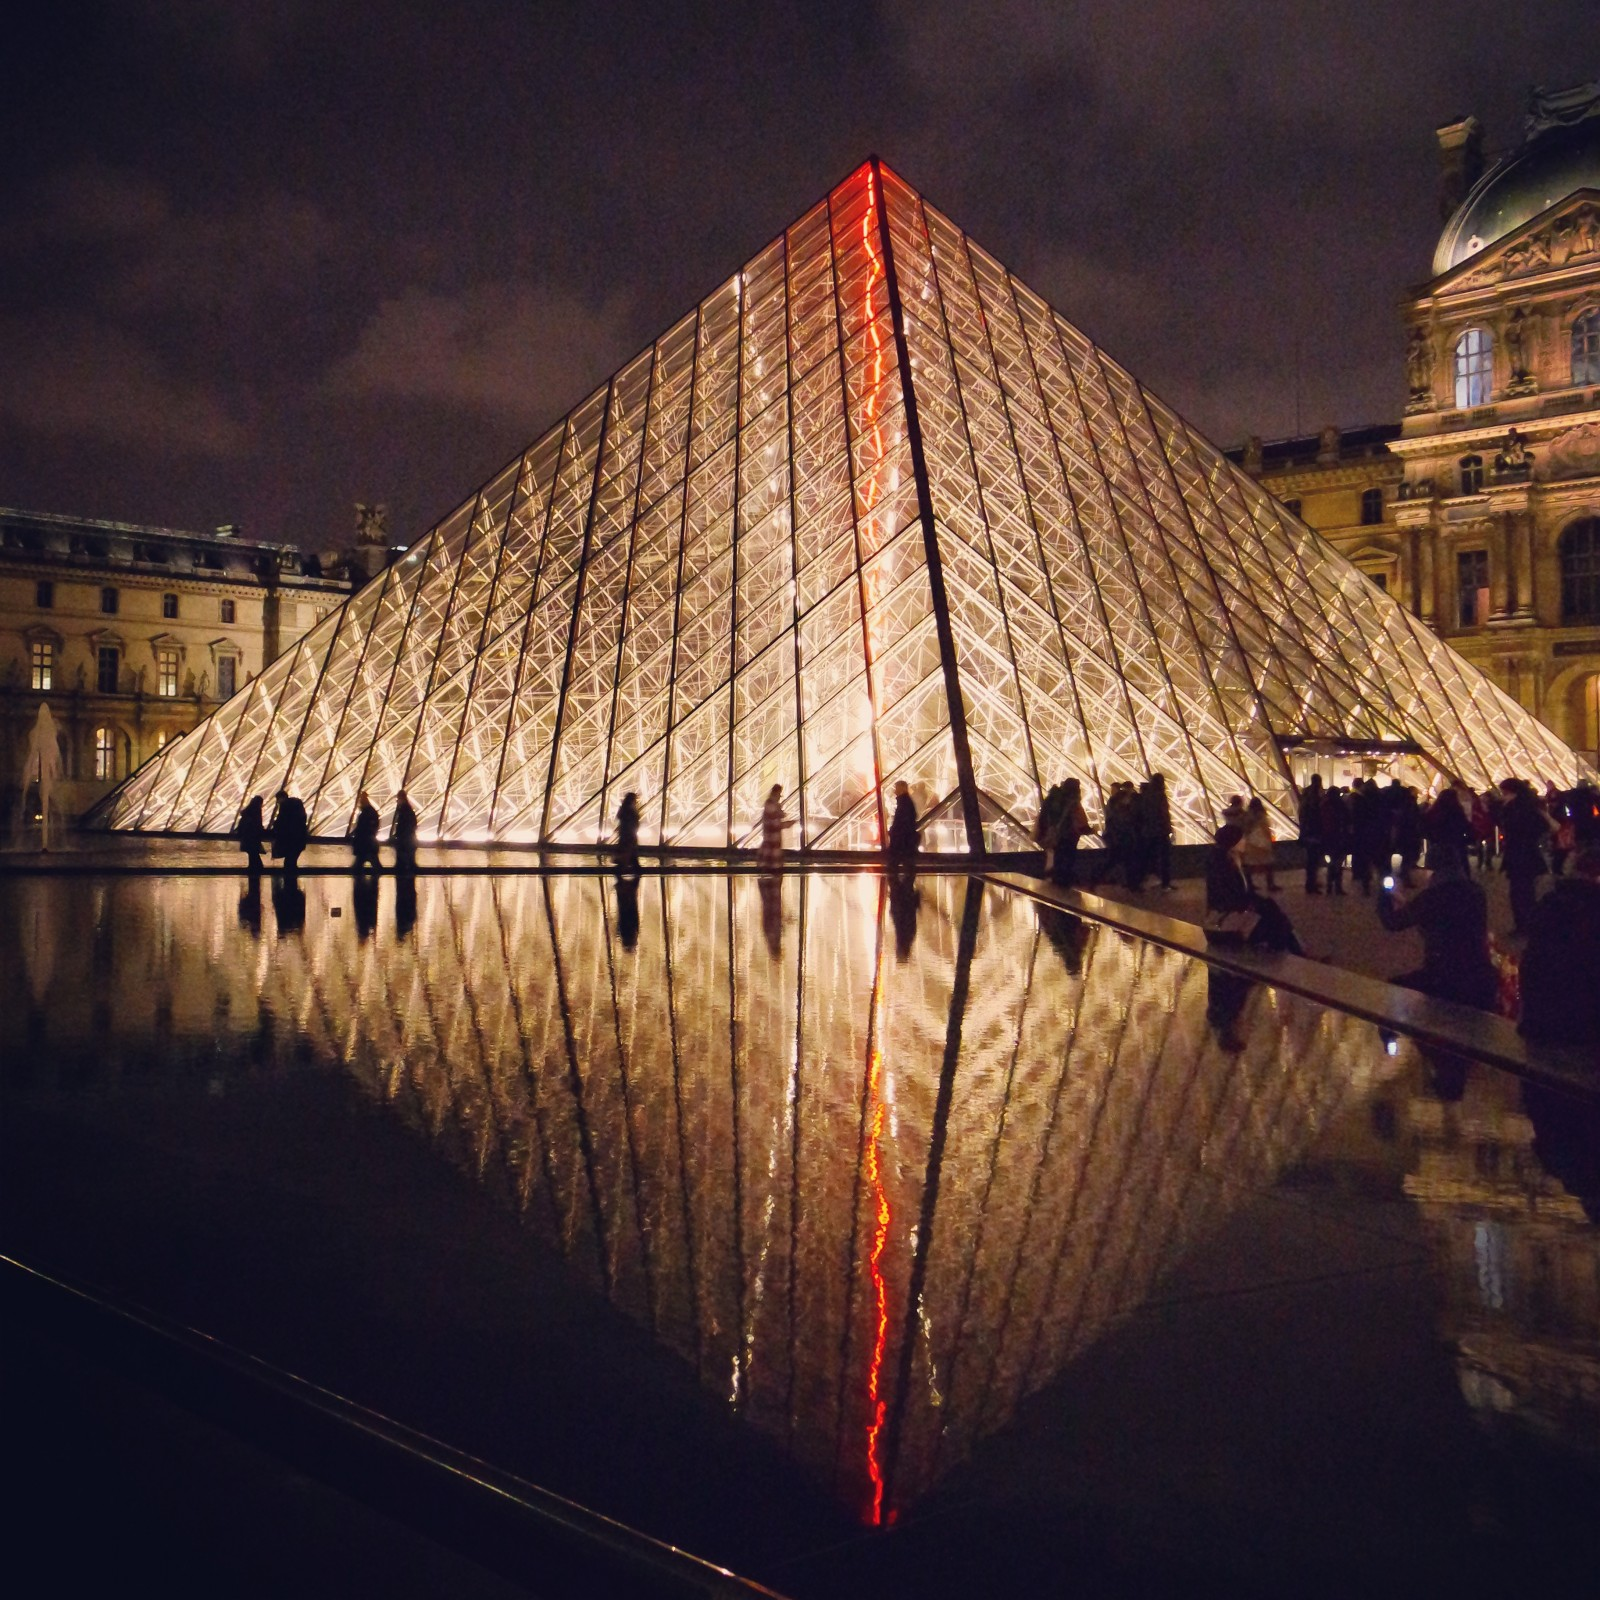 Pyramide Musée du Louvre de nuit Paris city by night monument photo united states of paris blog usofparis